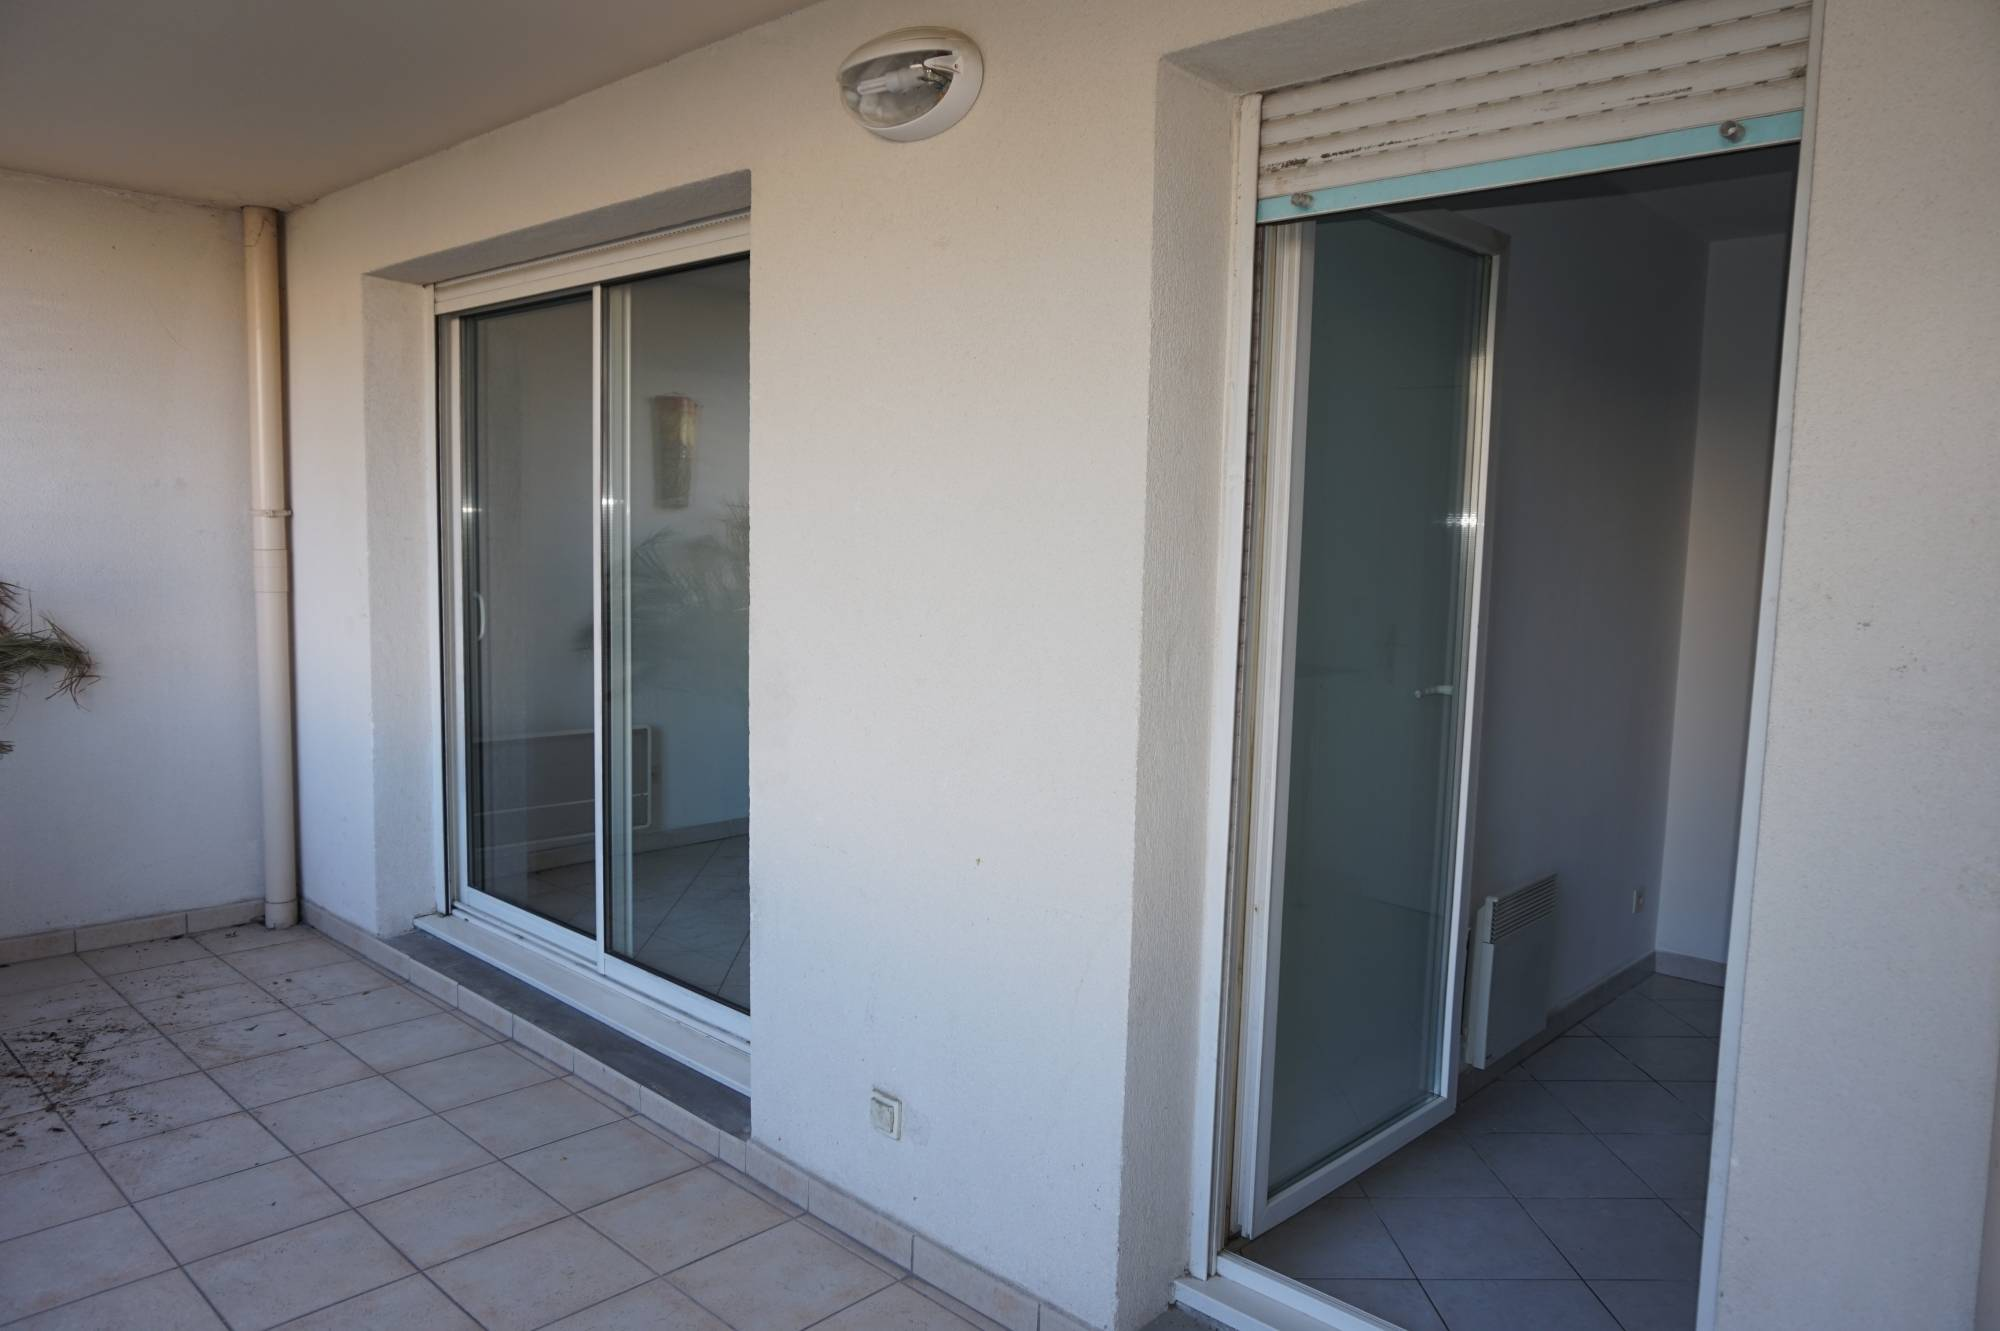 Appartement louer 3 pi ces marseille 04 agence for Louer appartement agence